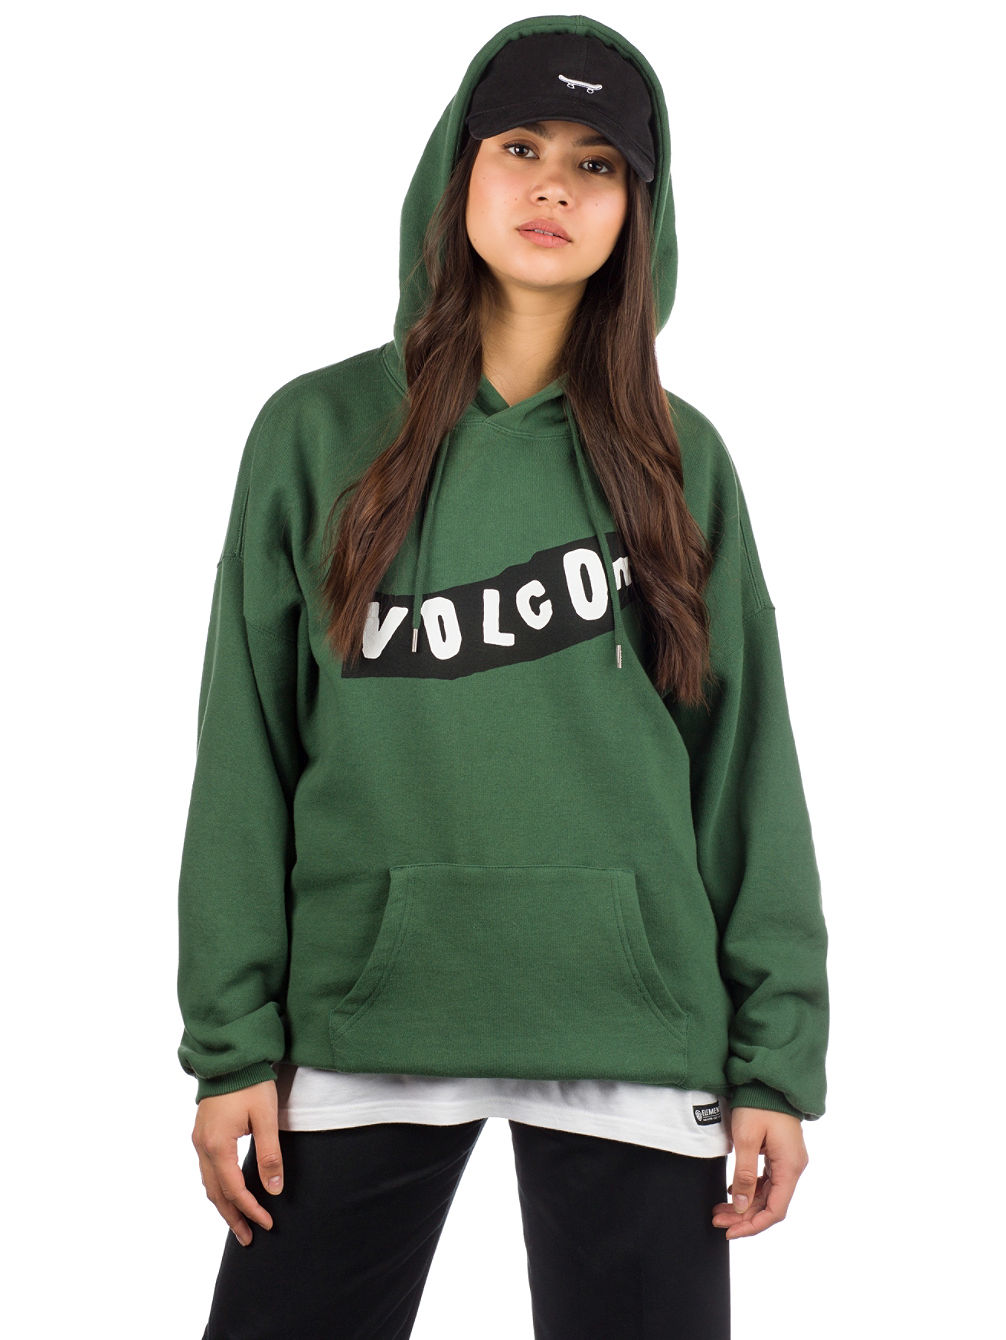 Roll It Up Hoodie